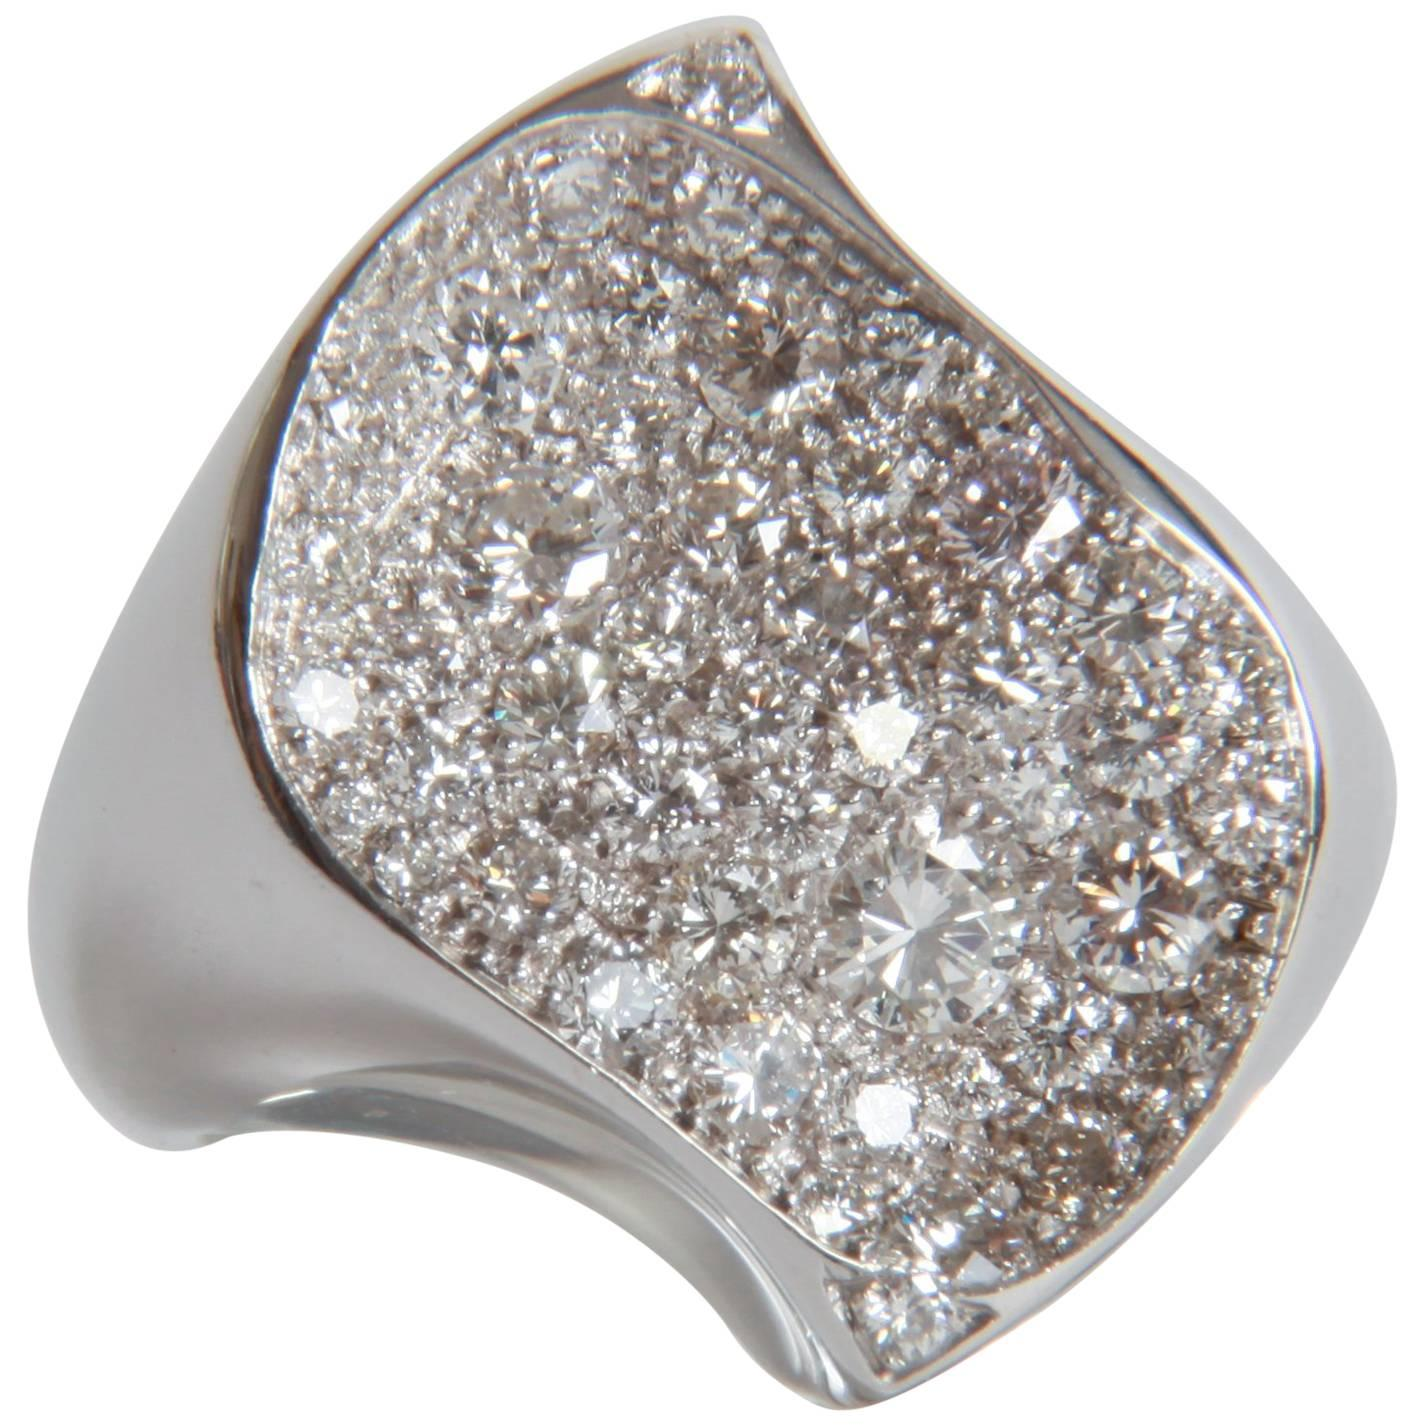 18K White Gold and 1,56 carats Diamonds Raving Ring by Marion Jeantet